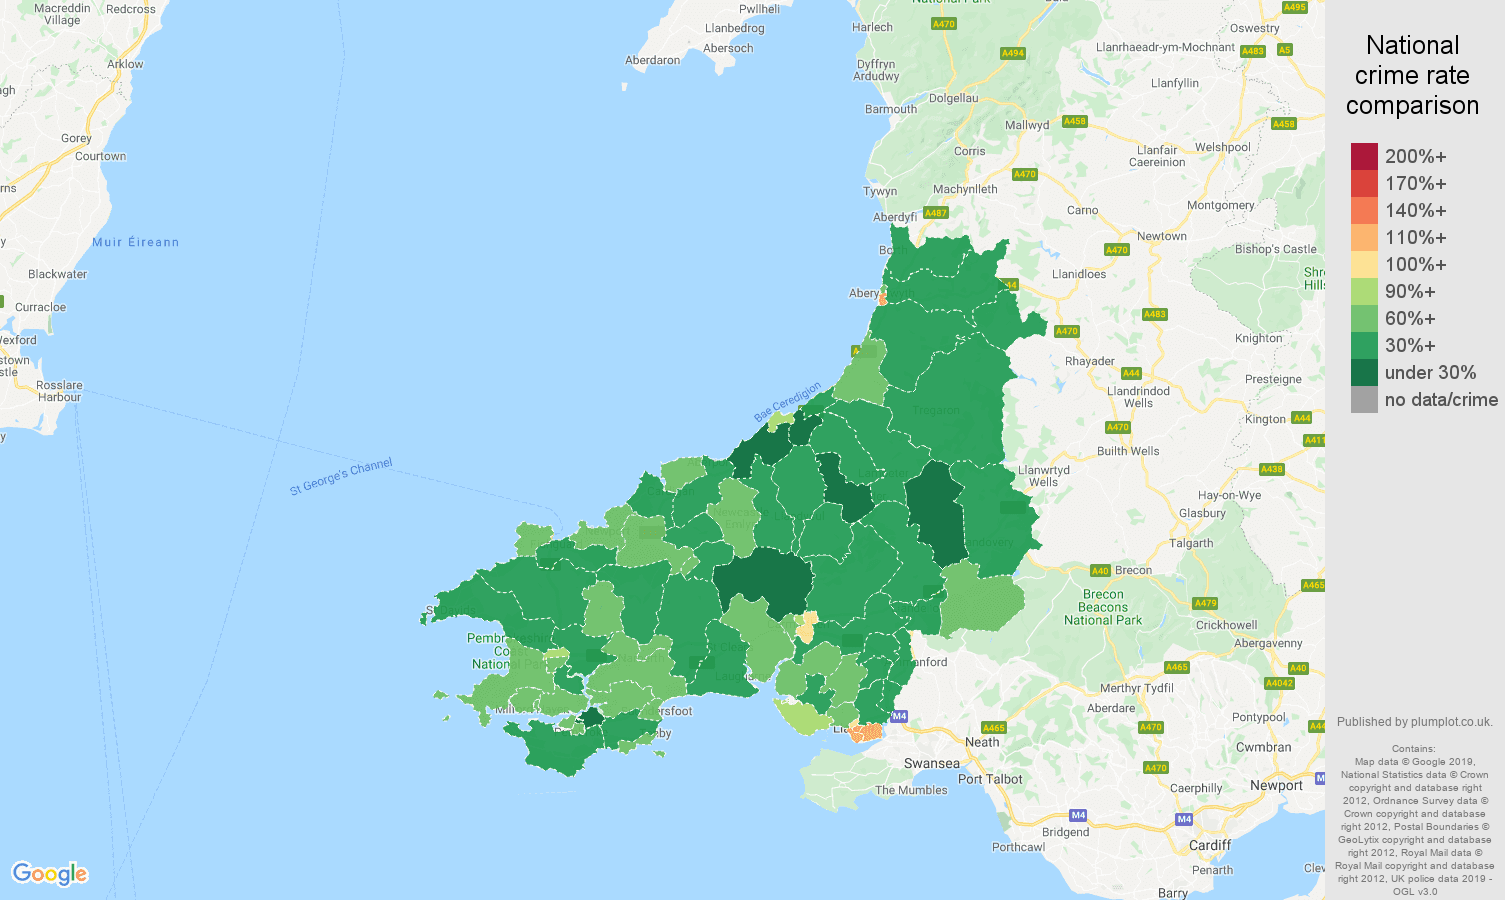 Dyfed other theft crime rate comparison map